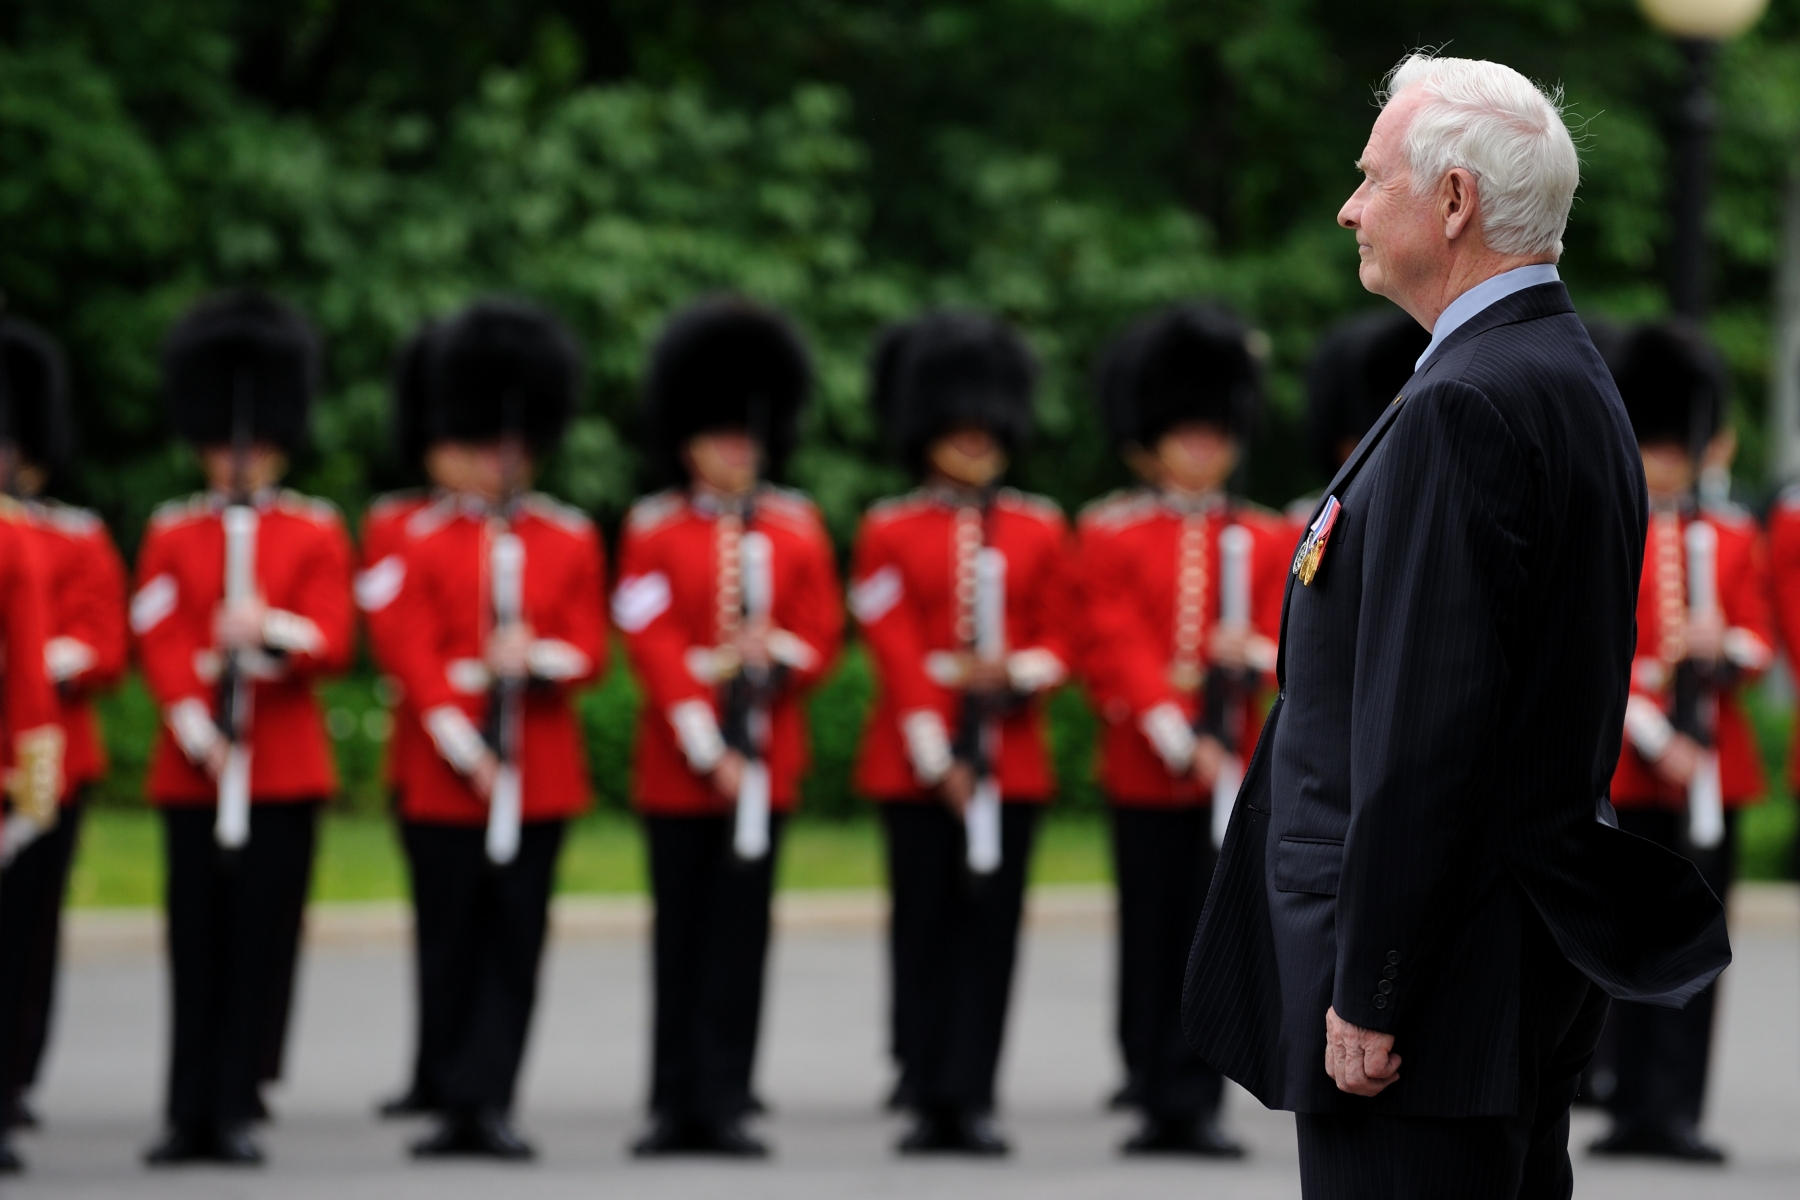 His Excellency the Right Honourable David Johnston, Governor General and Commander-in-Chief of Canada received the Viceregal salute.